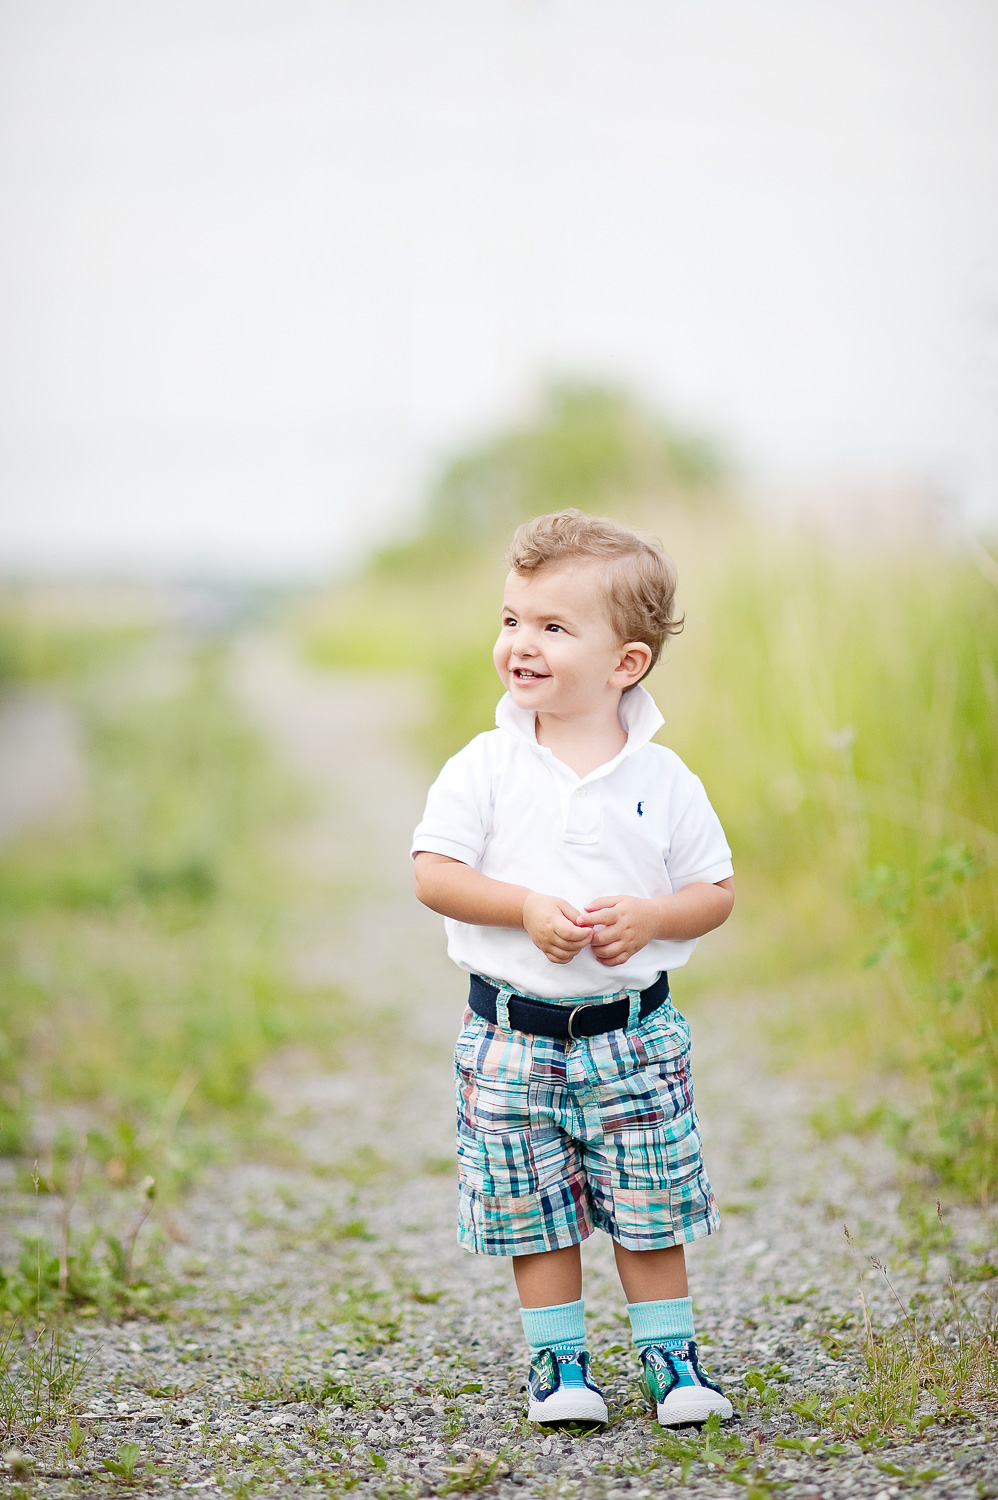 outdoor portrait of a toddler